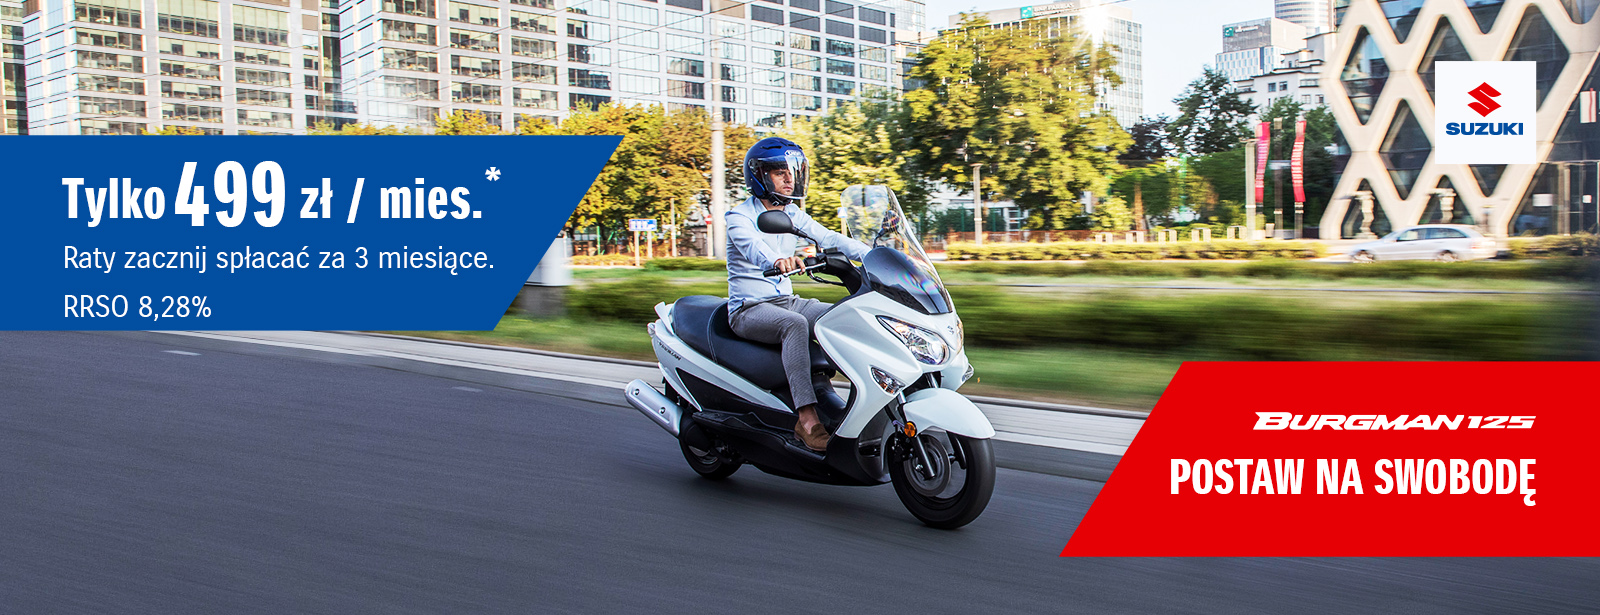 suzuki-burgman-financial-offer